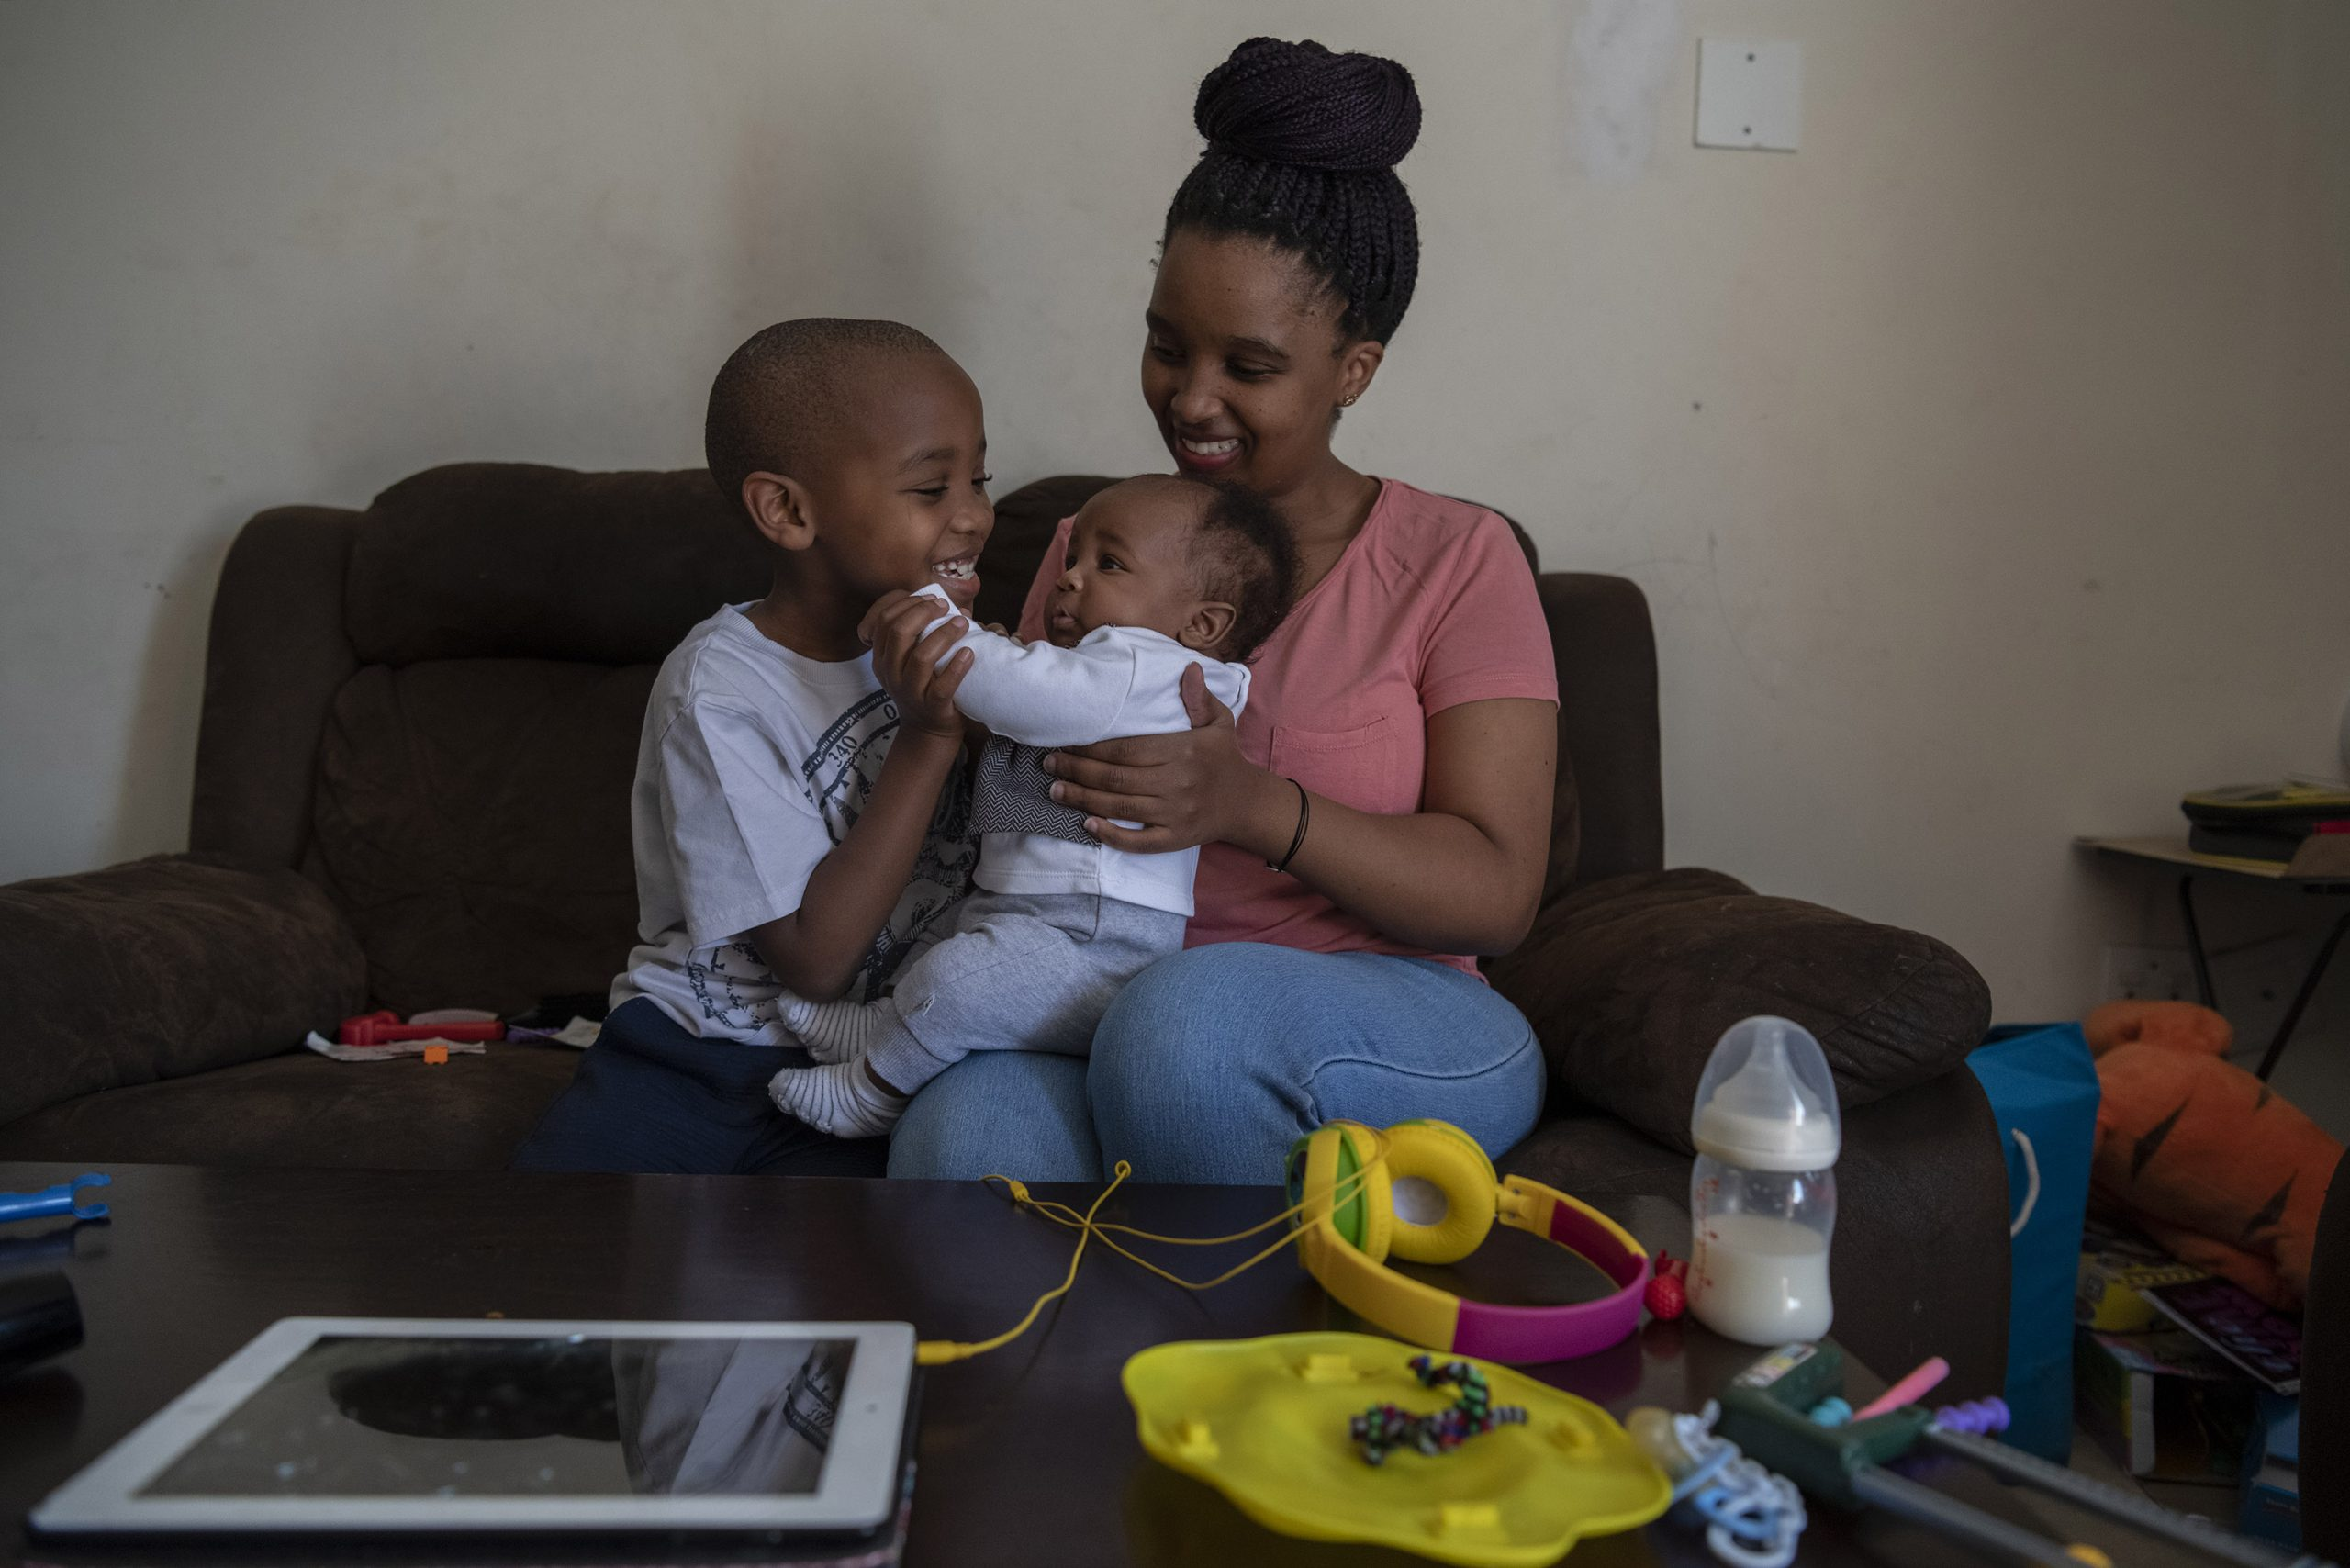 13 August 2020: From left, seven-year-old Esethu plays with his baby brother Khaya. Thembeka Sibiya is concerned that her newborn son will not enjoy the same social life as his brother.